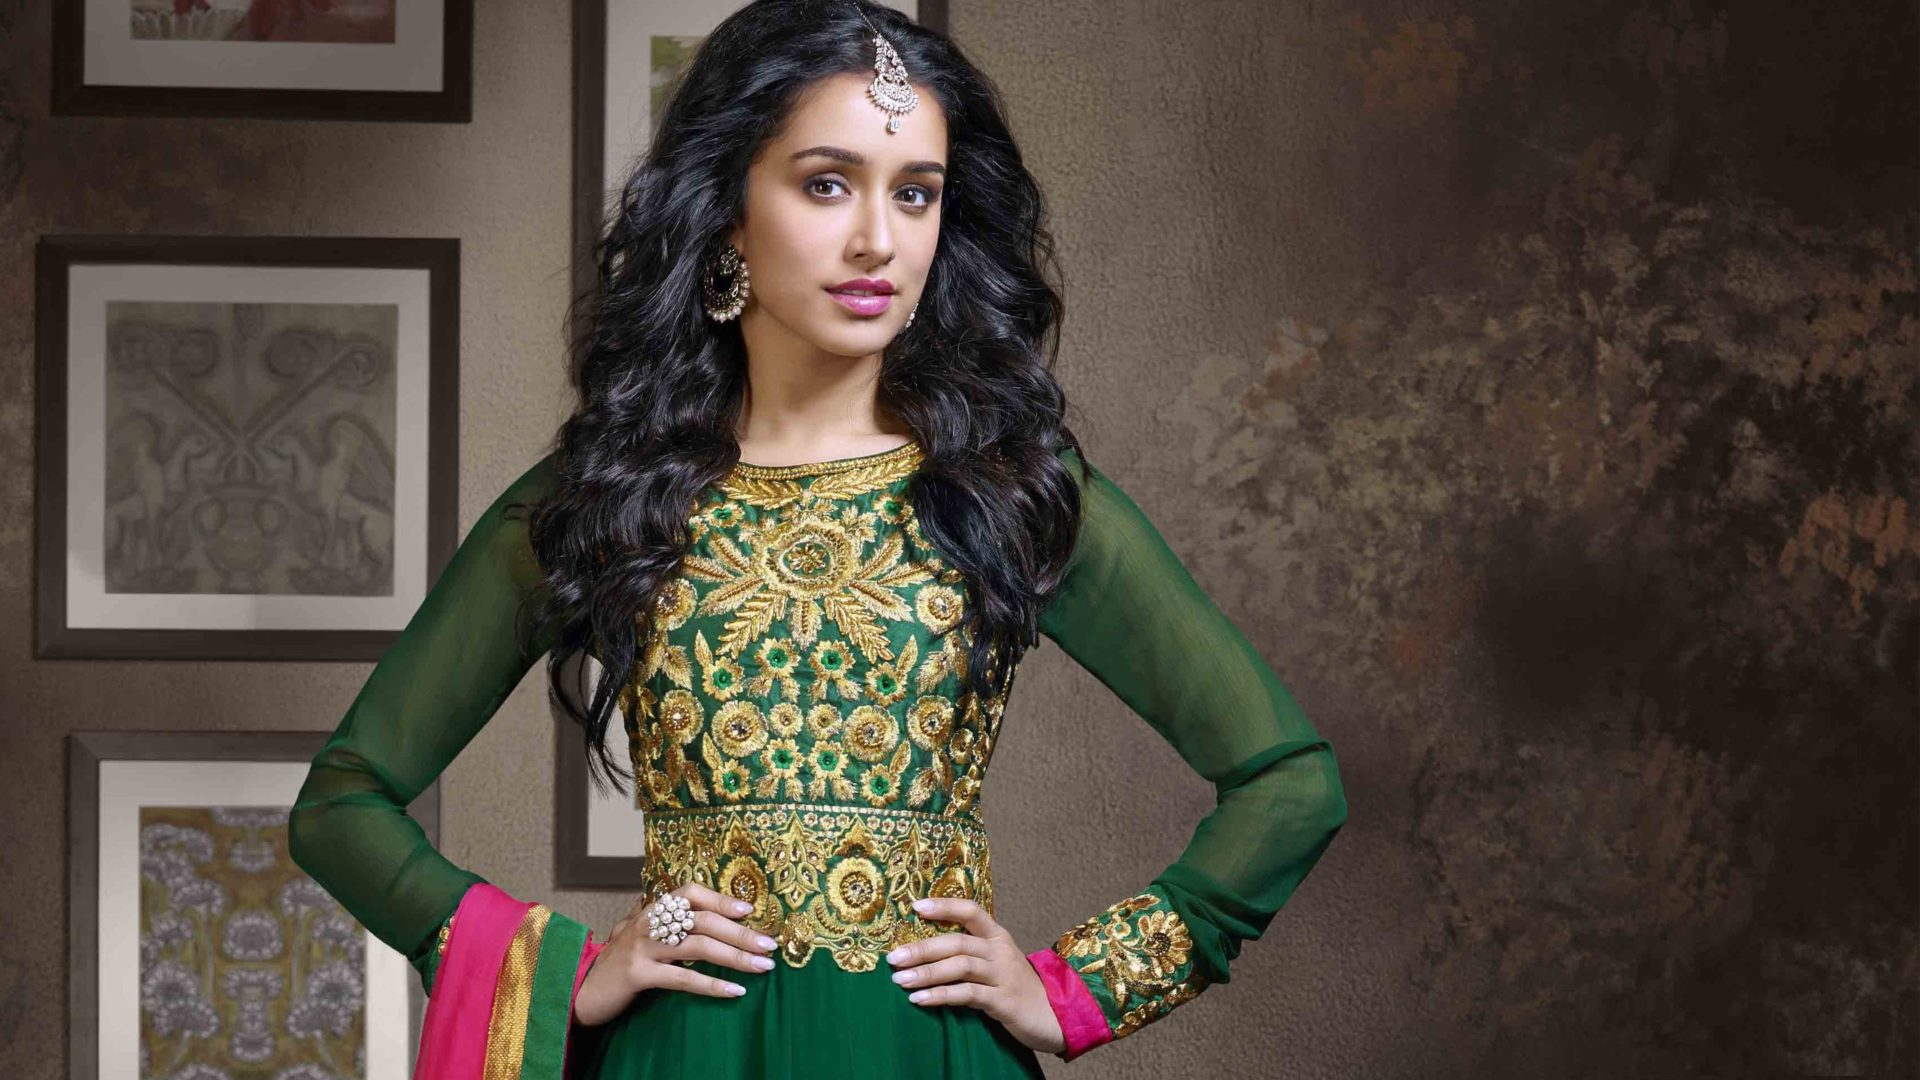 shraddha kapoor green dress wallpaper background